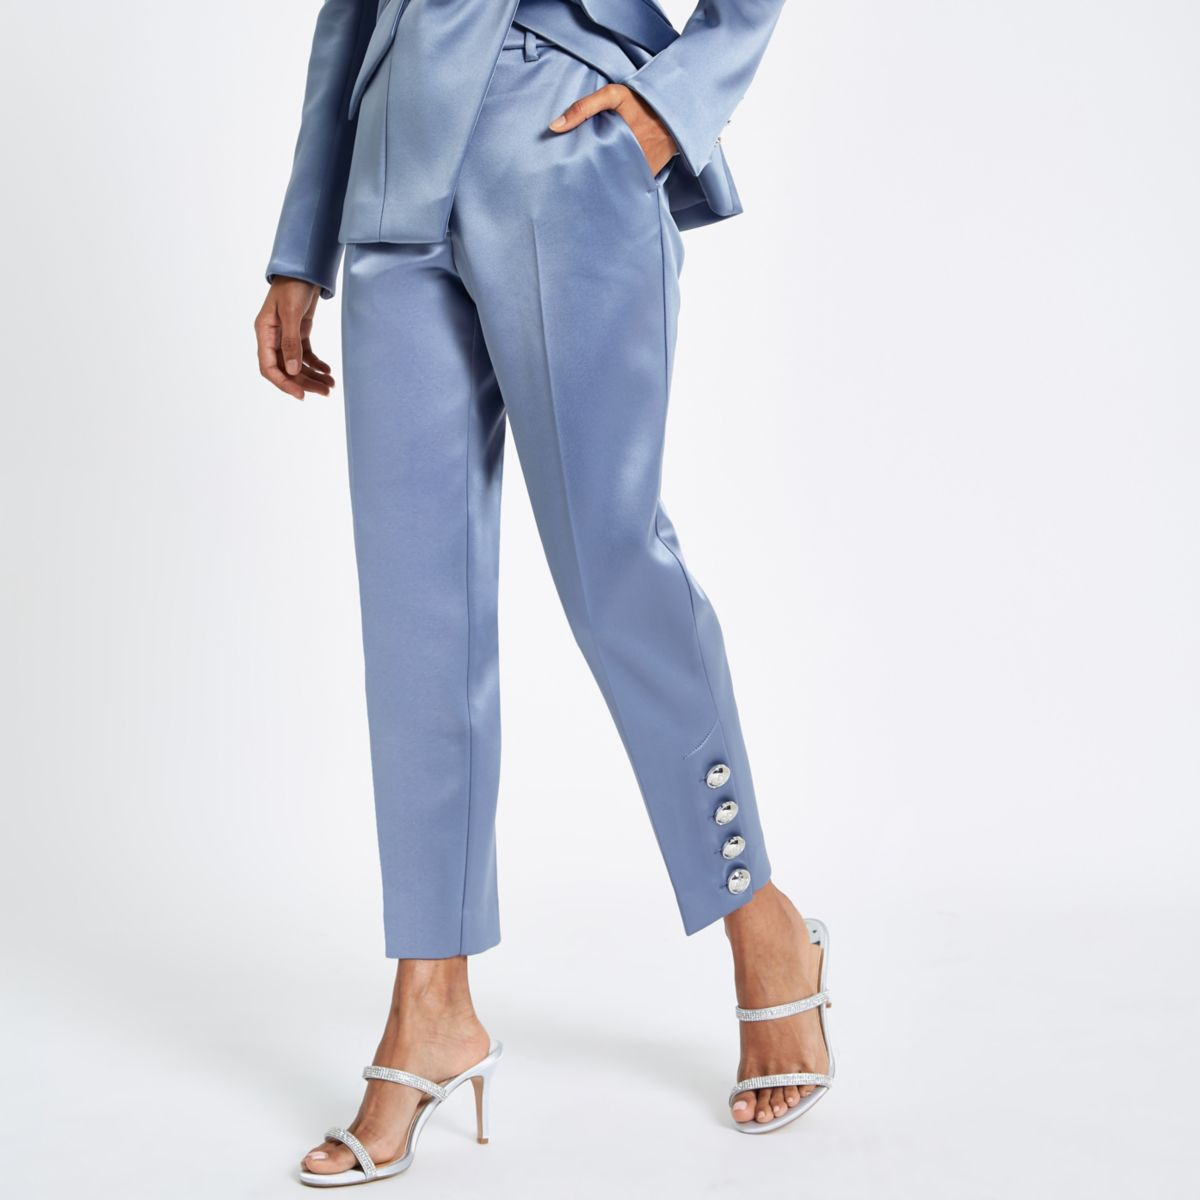 Petite light blue satin cigarette pants